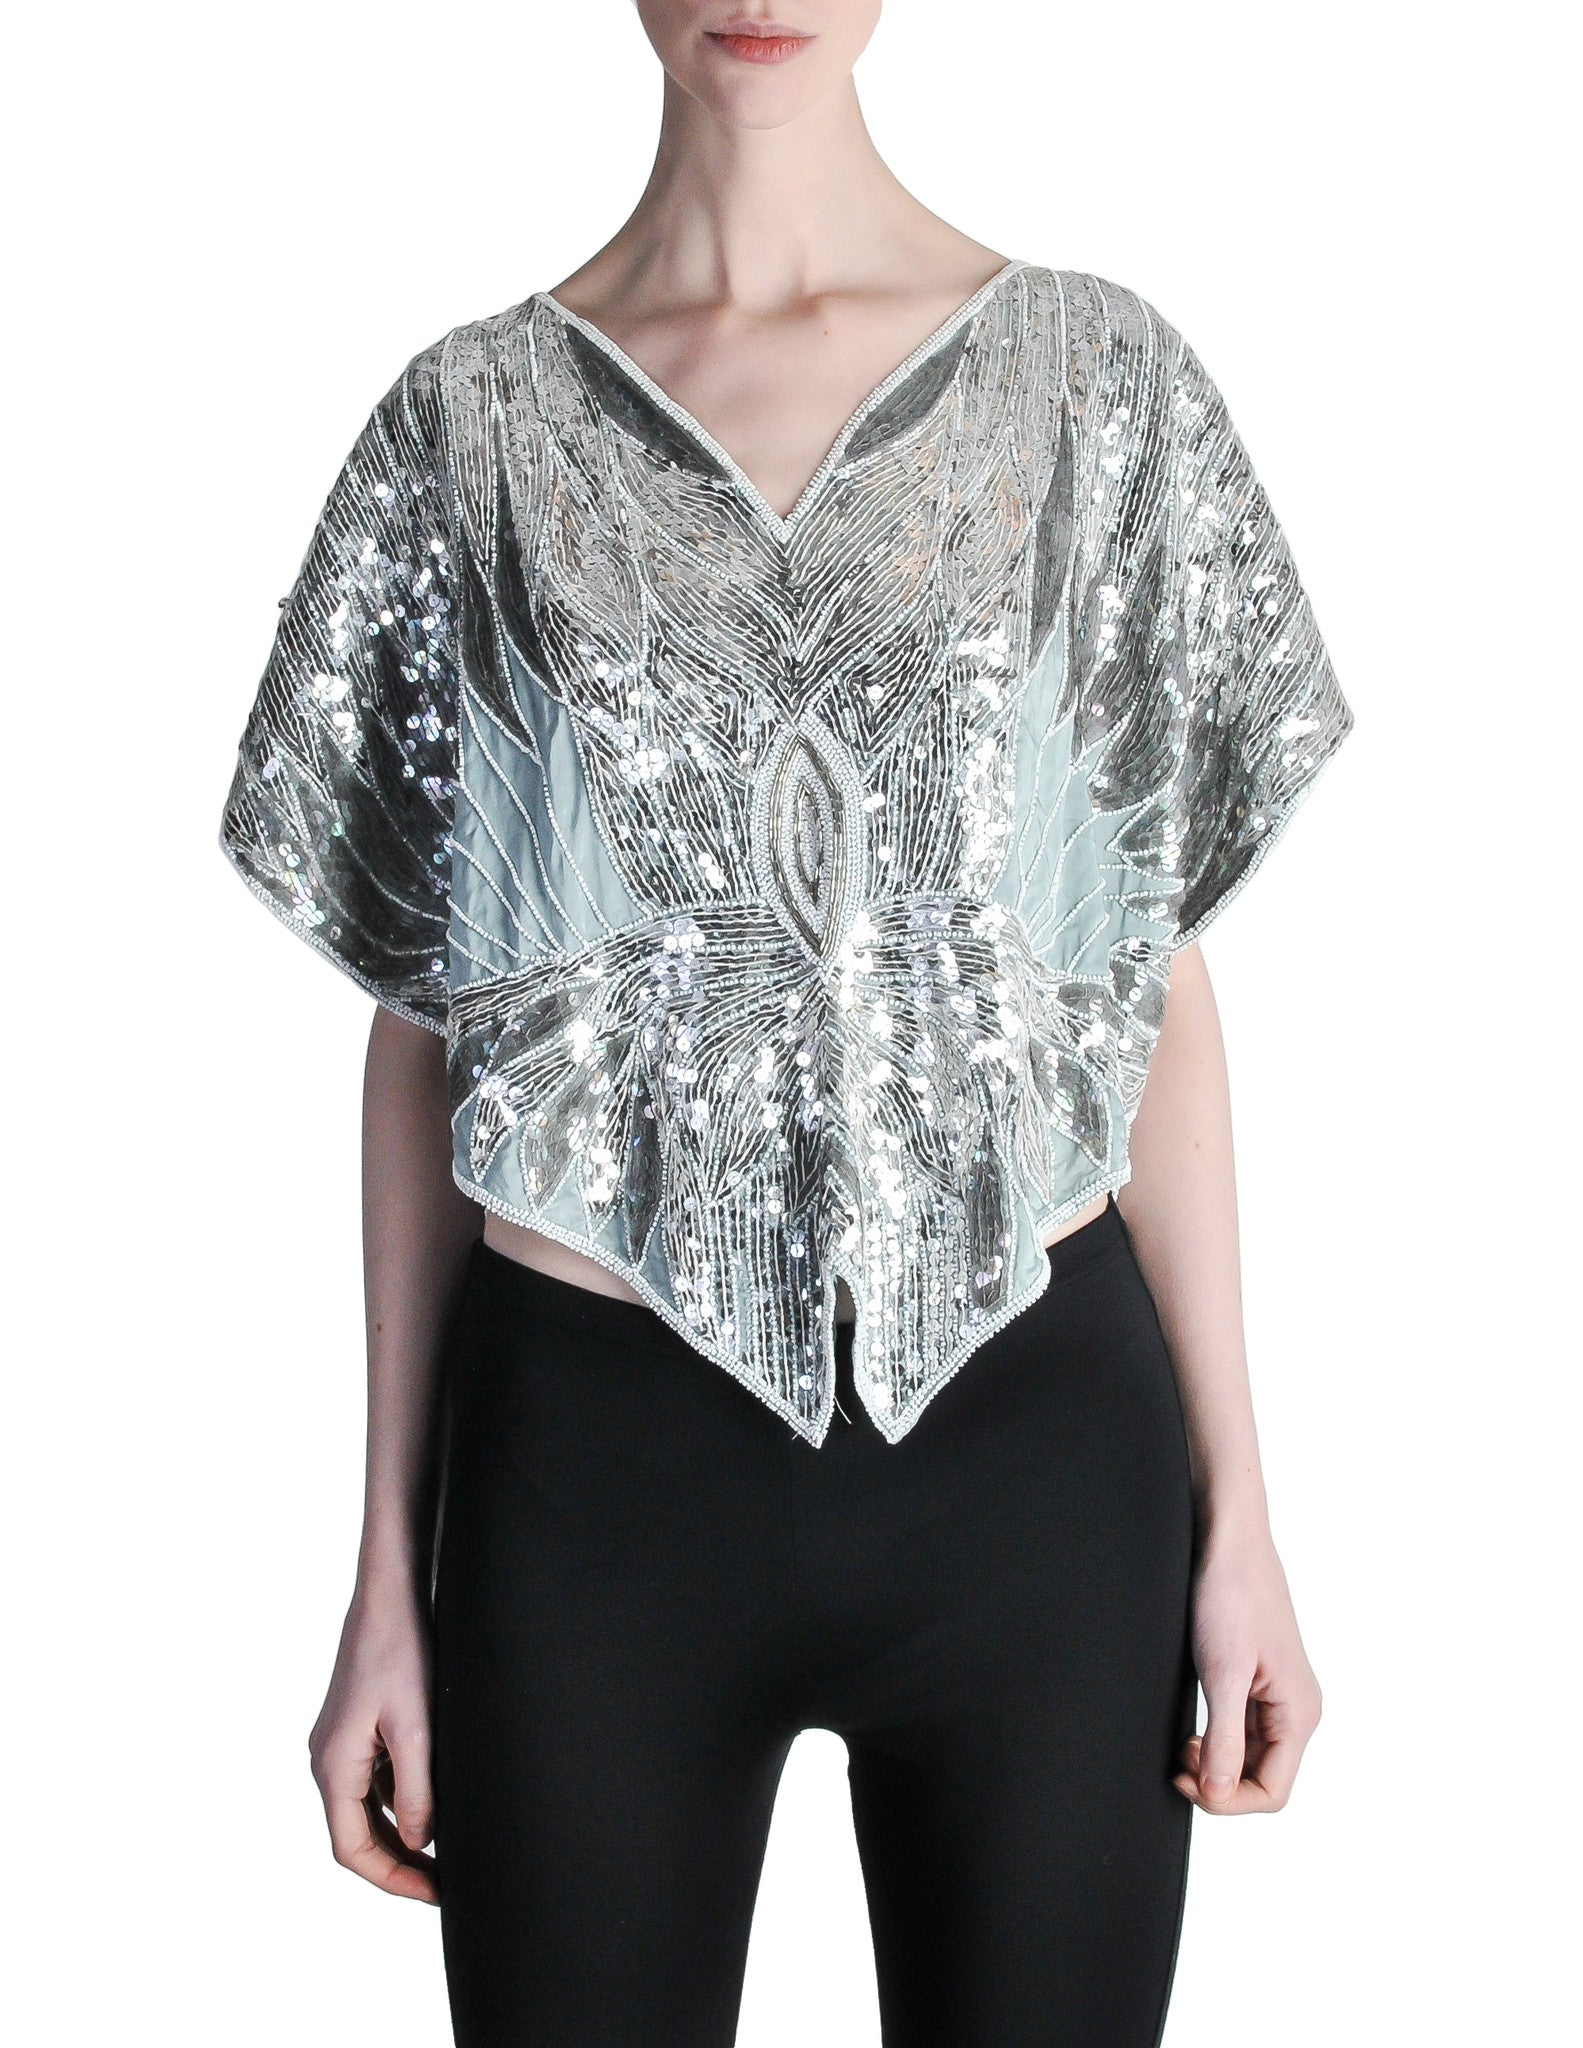 Vintage 1970s Silver Sequin Beaded Butterfly Top - Amarcord Vintage Fashion  - 1